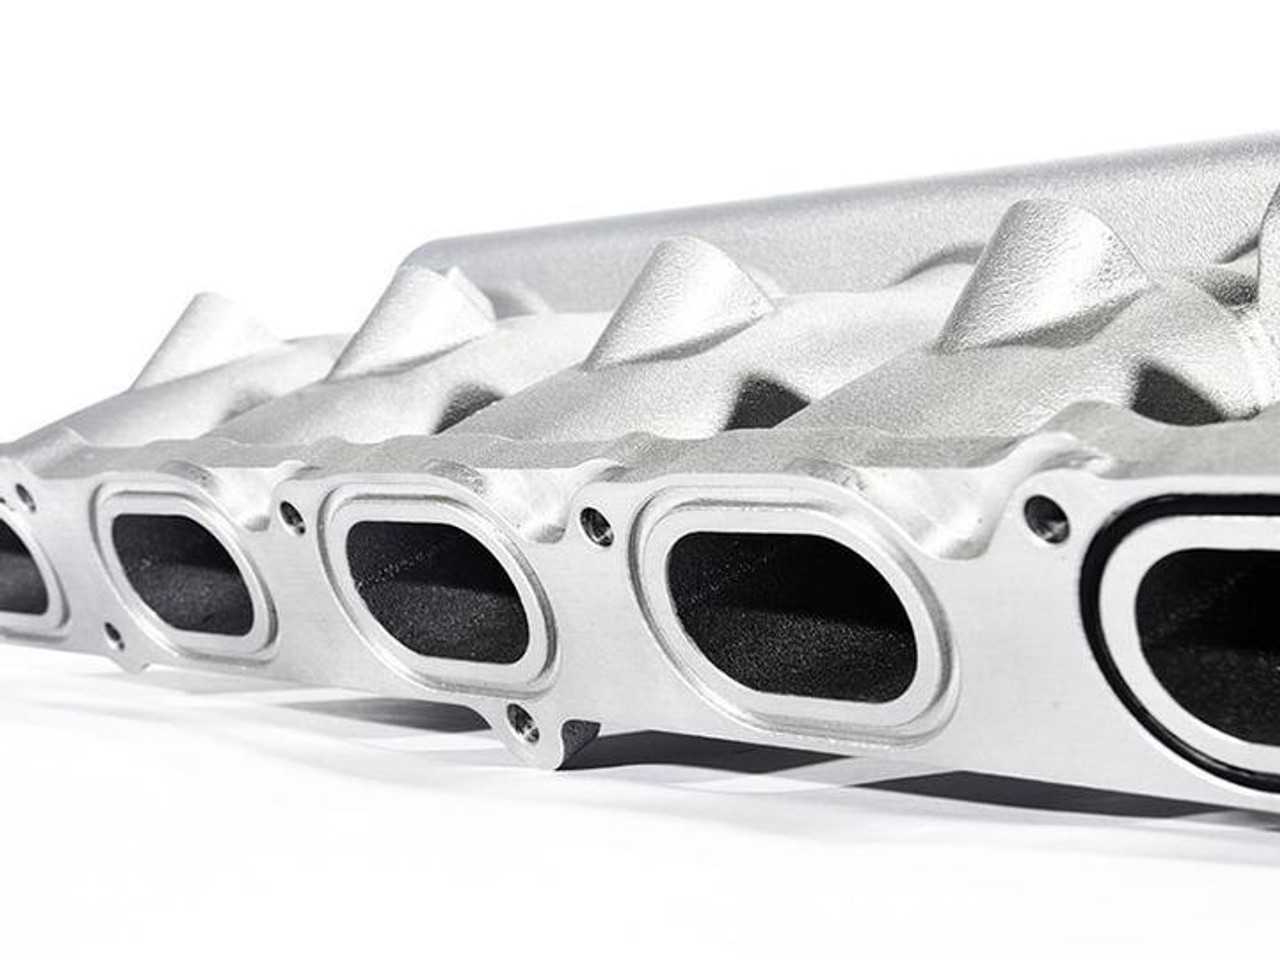 IE 2.5L 5 Cylinder Intake Manifold (Electric Power Steering Only)